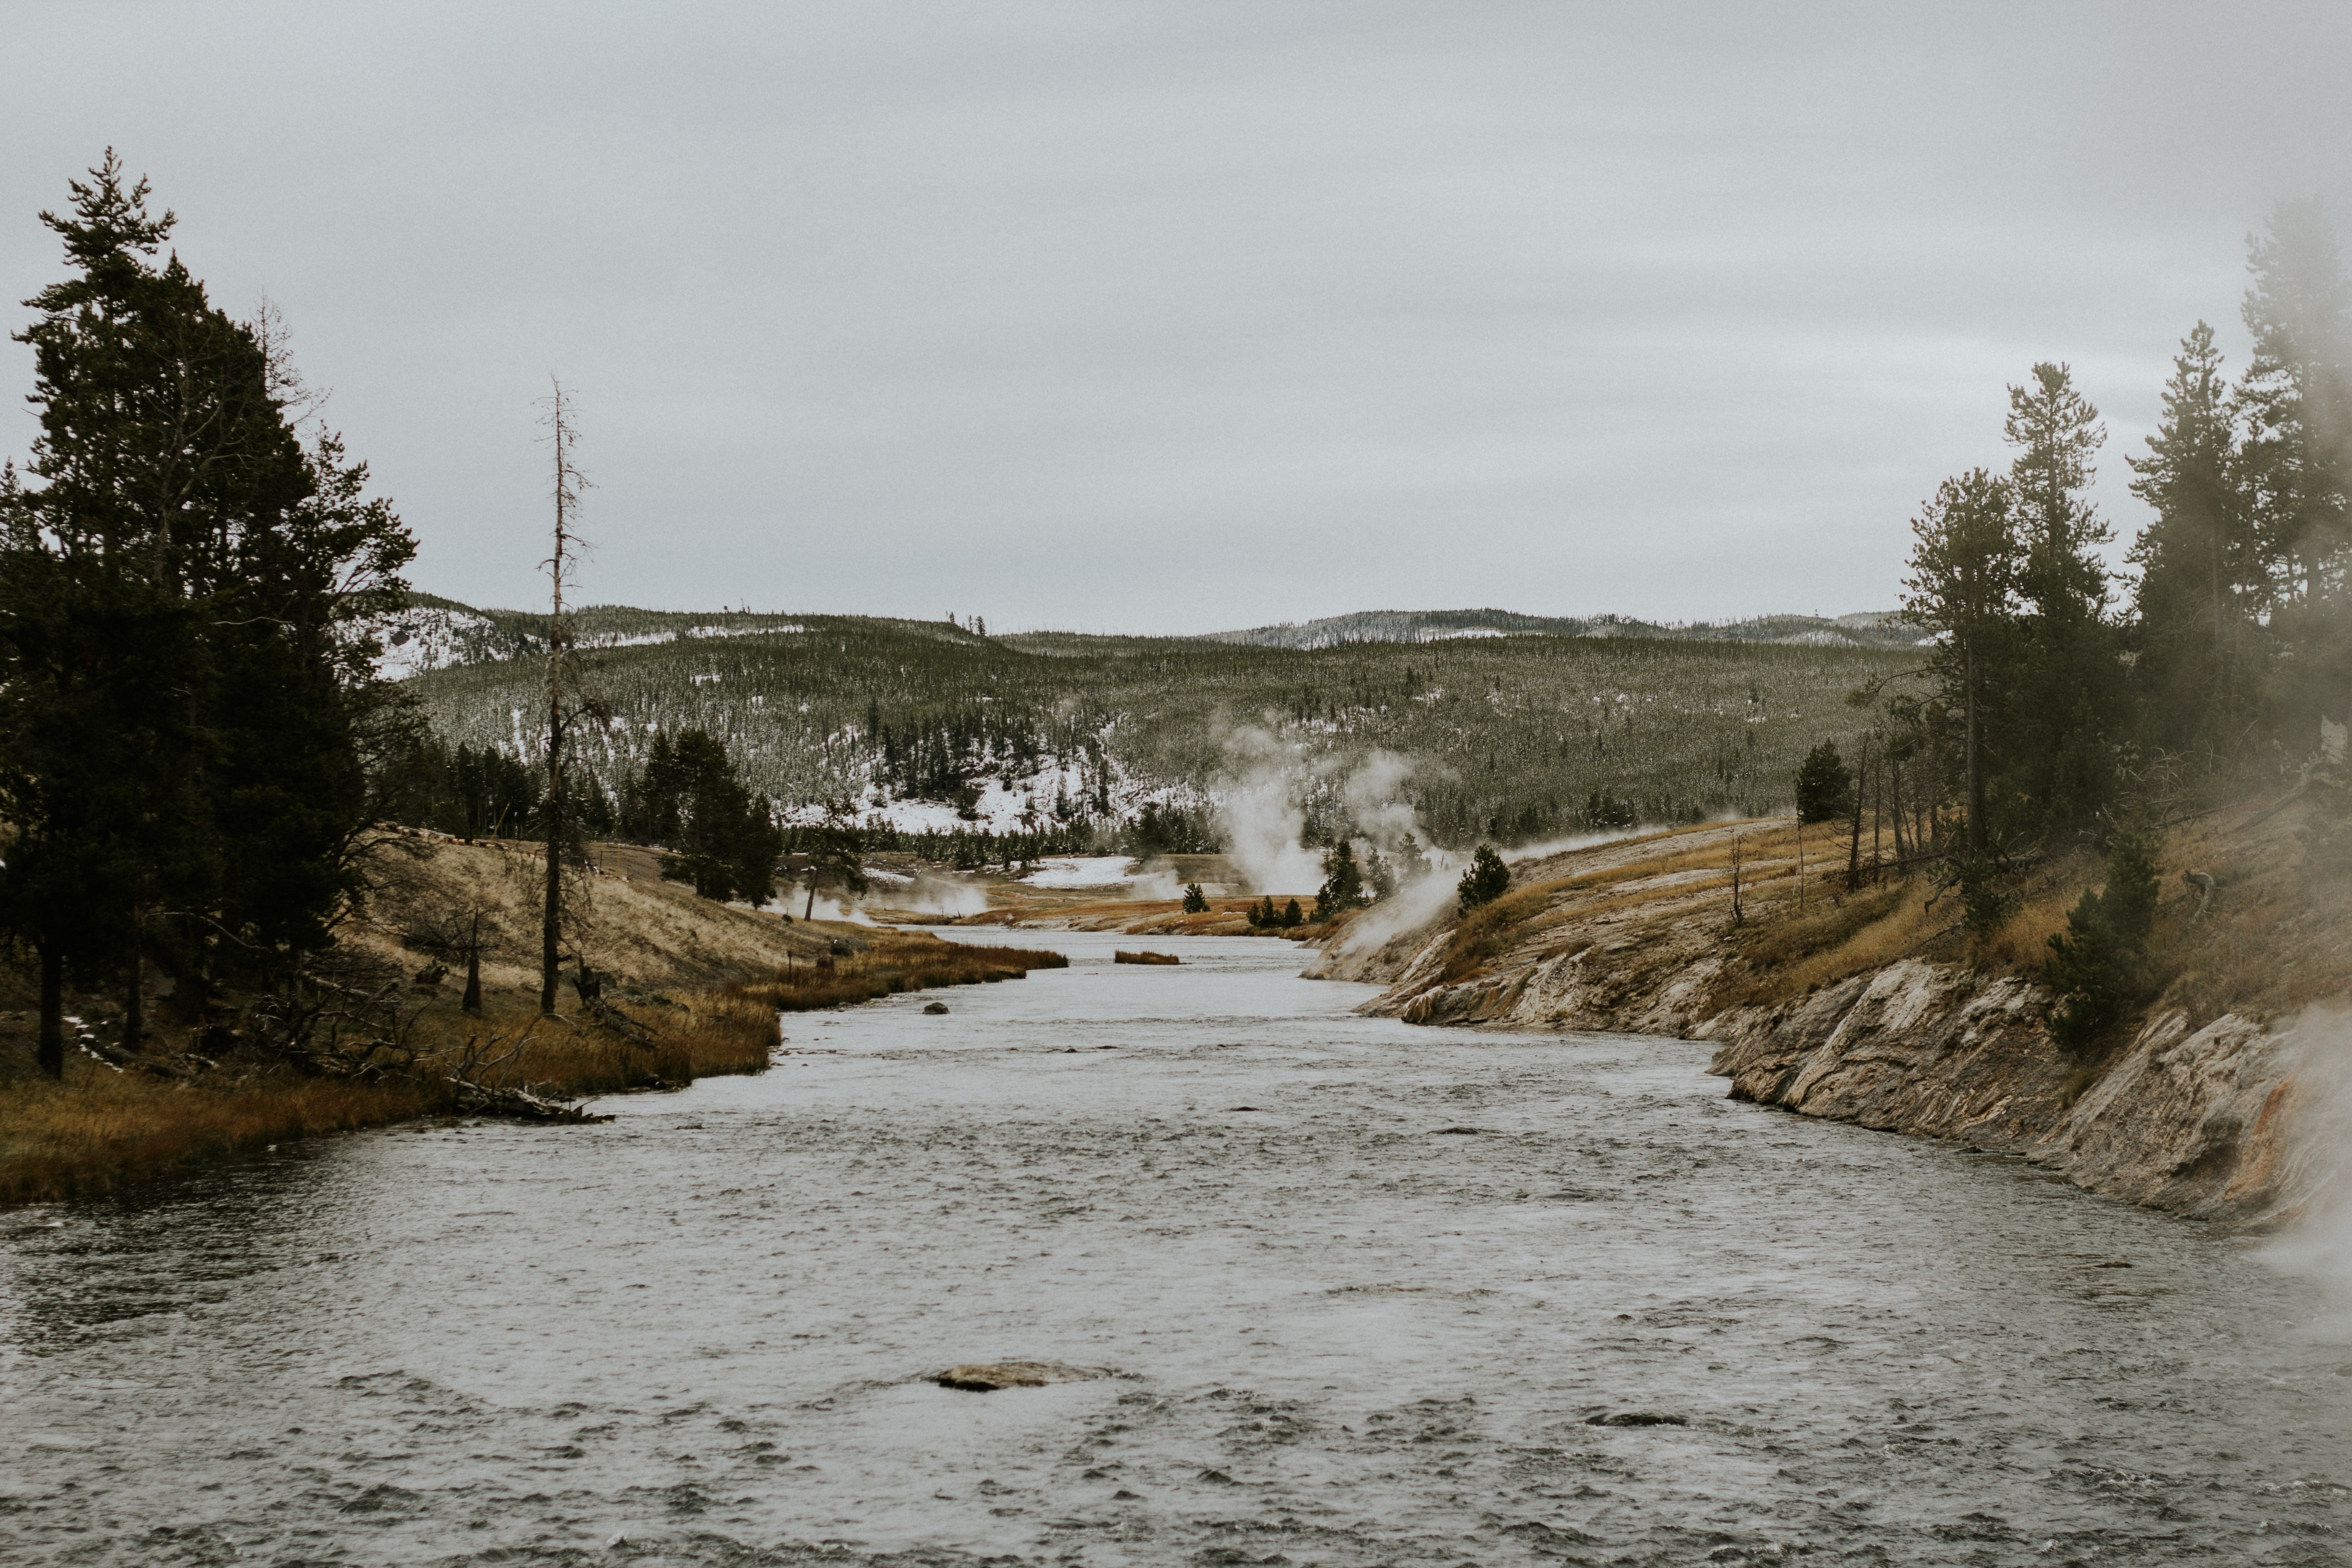 A river in Yellowstone National Park on a gray winter day